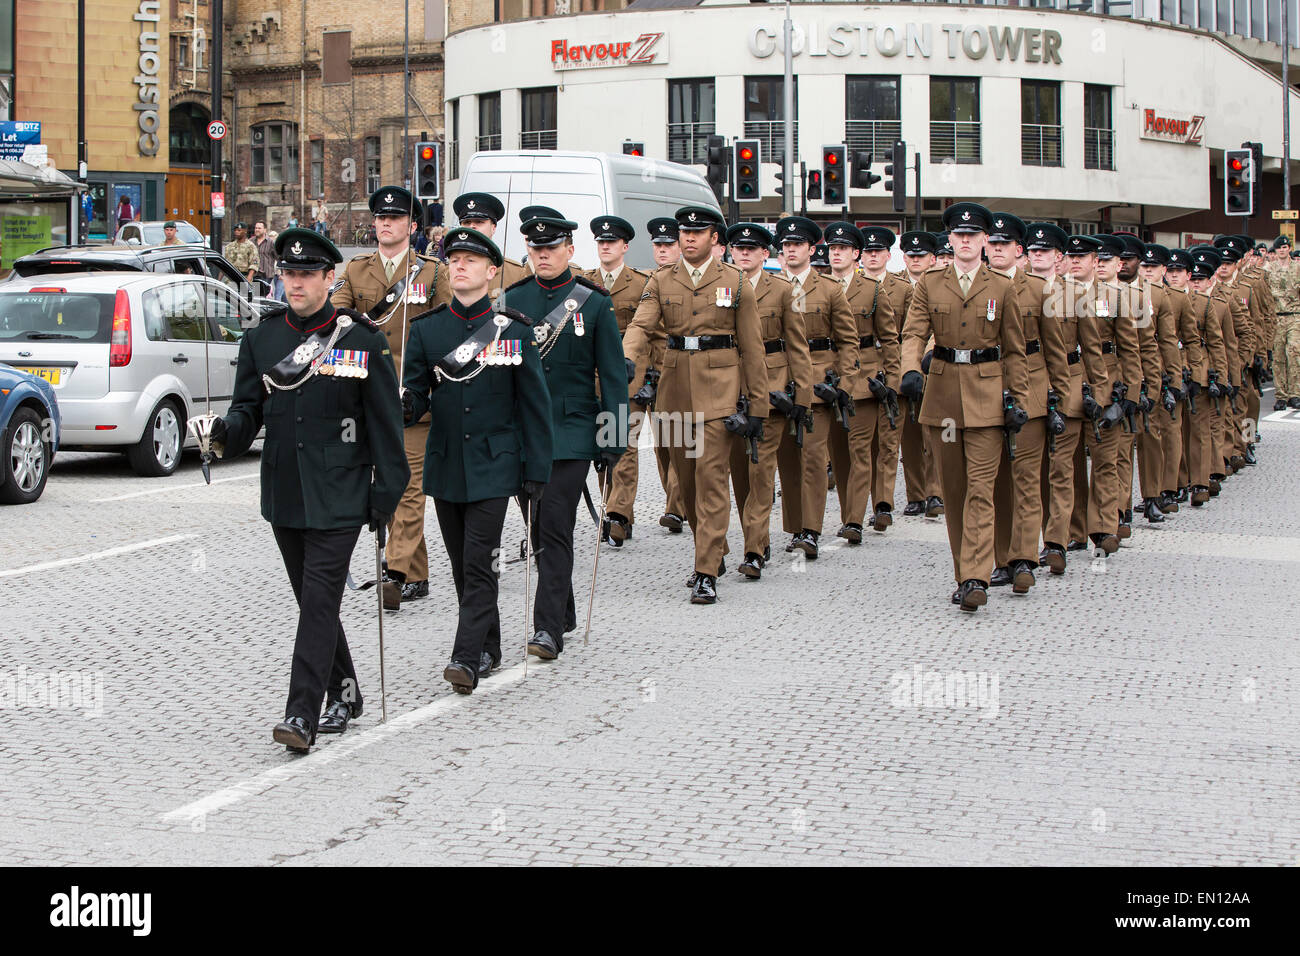 Soldiers from British Army Regiment The Rifles march through